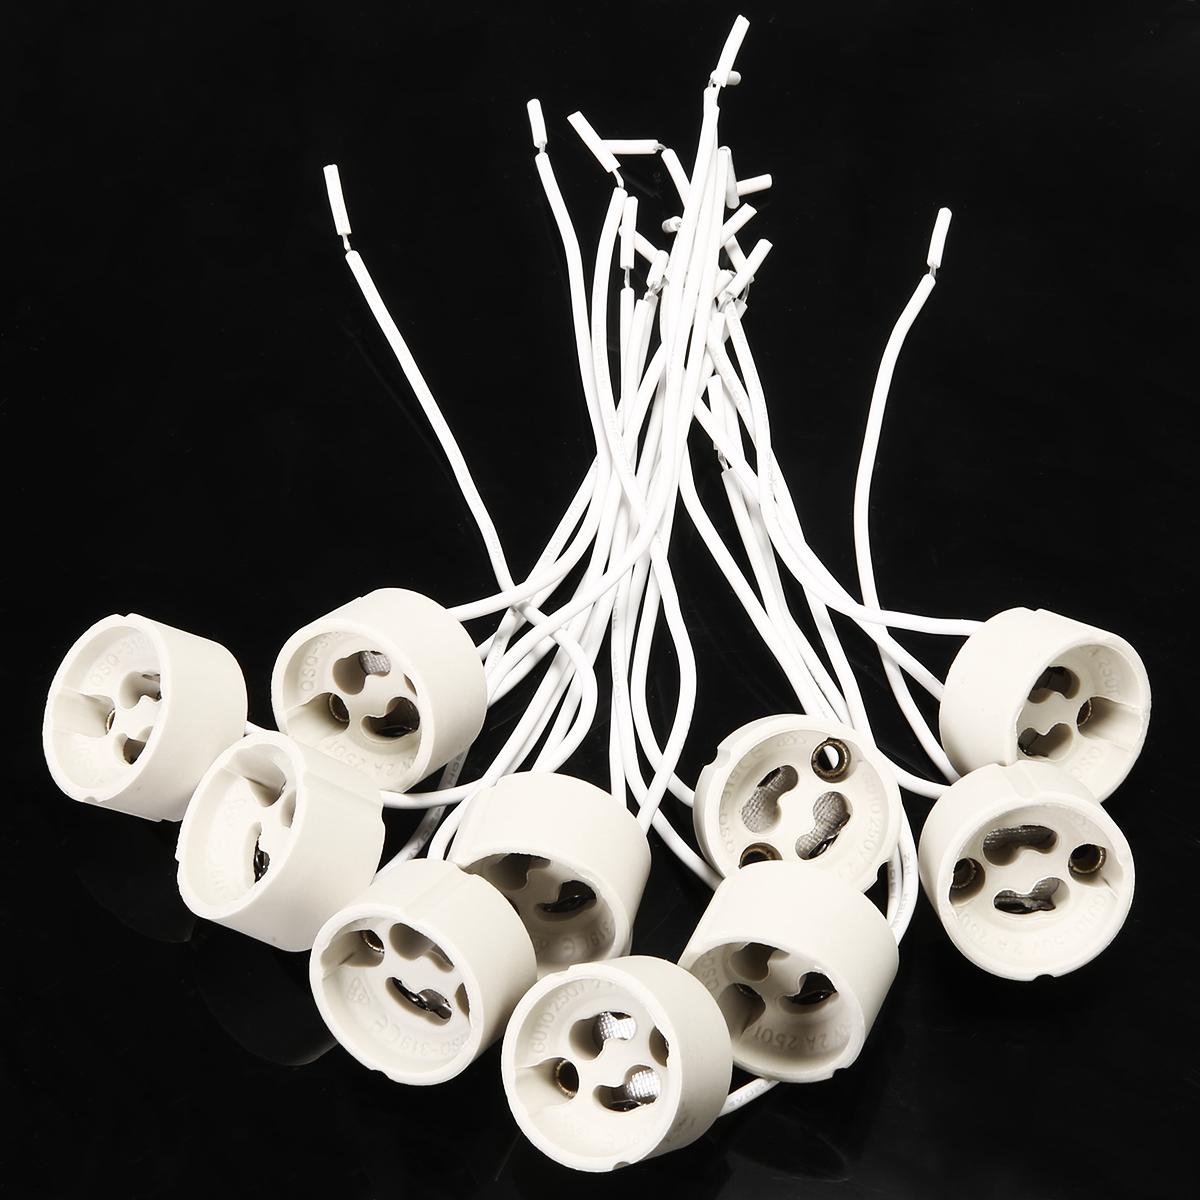 10pcs/lot GU10 Lamp Holder Socket Bbase Adapter Wire Connector Ceramic Socket For LED Halogen Light Light Accessory